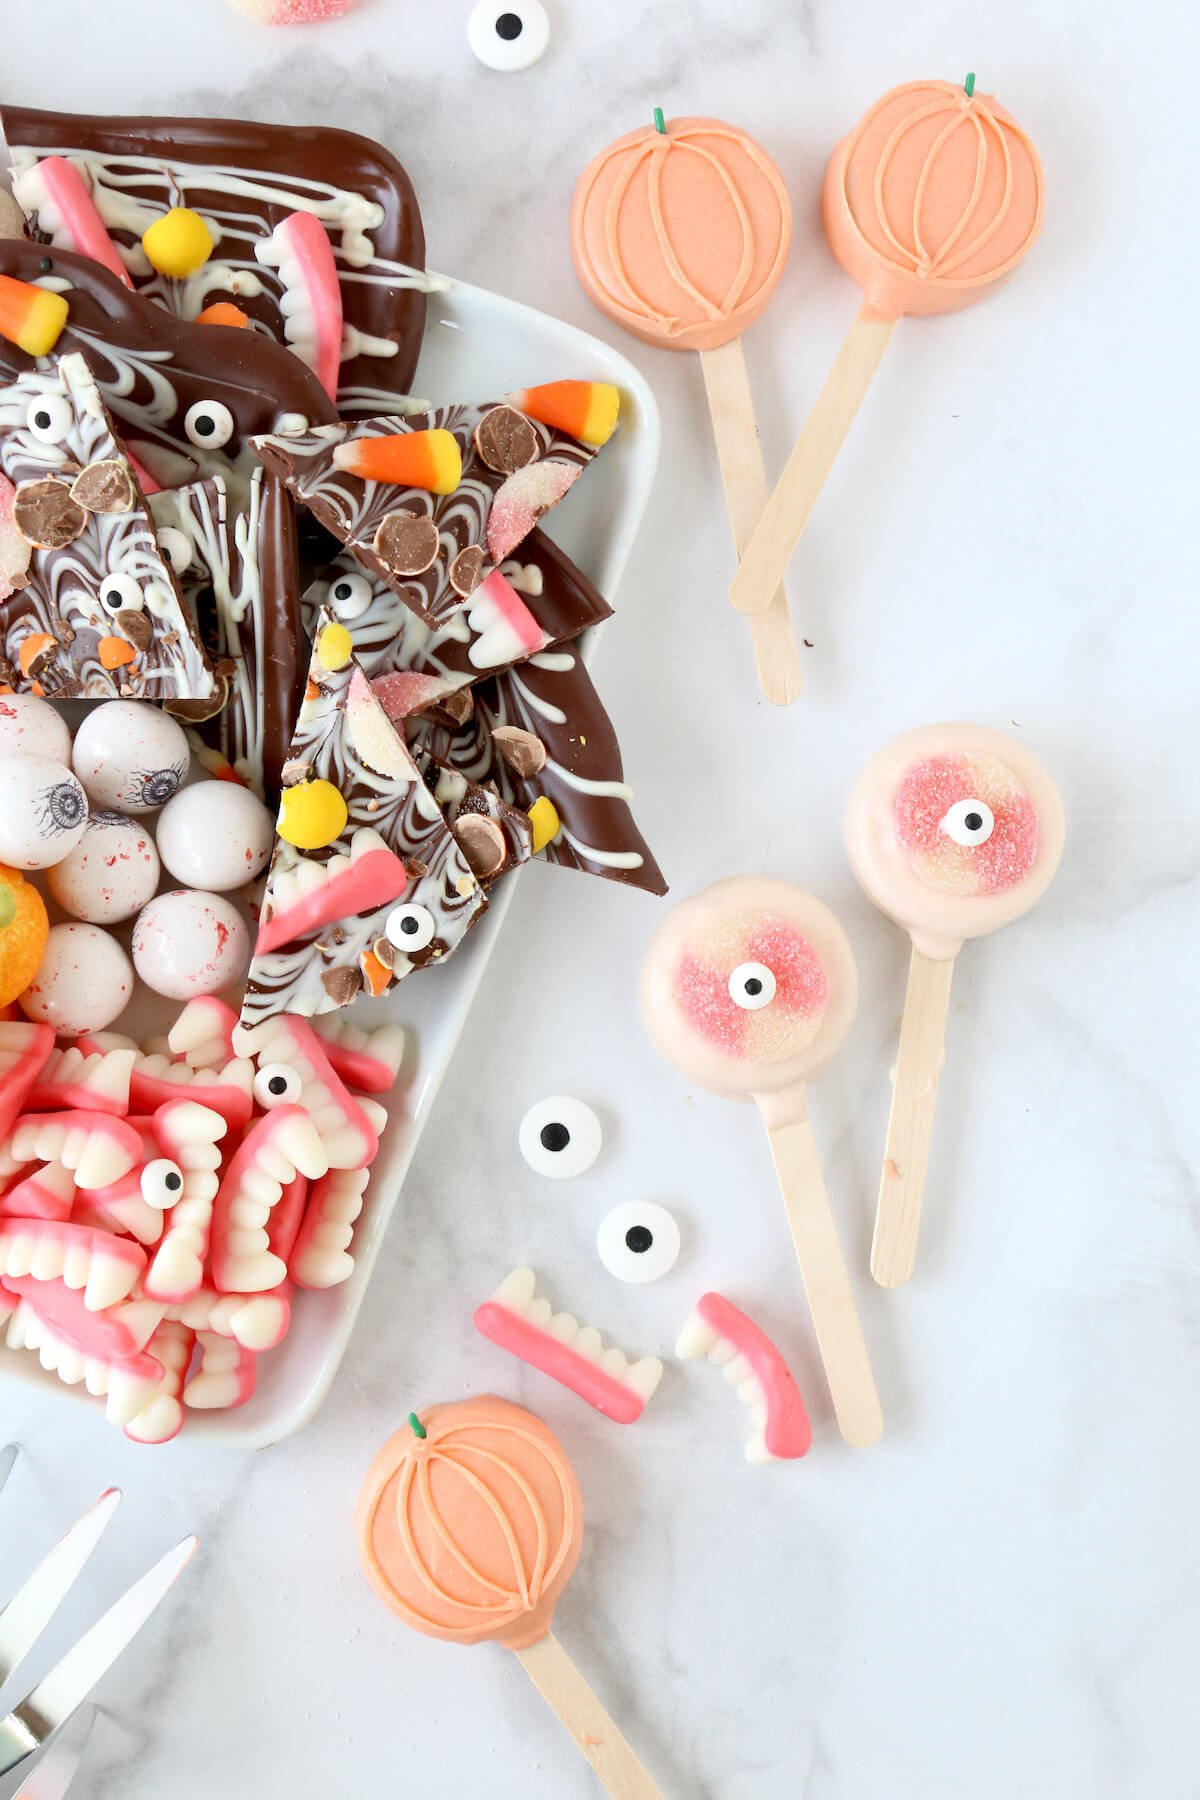 A close up of a candy platter, next two two oreos dipped in chocolate with eyeballs.